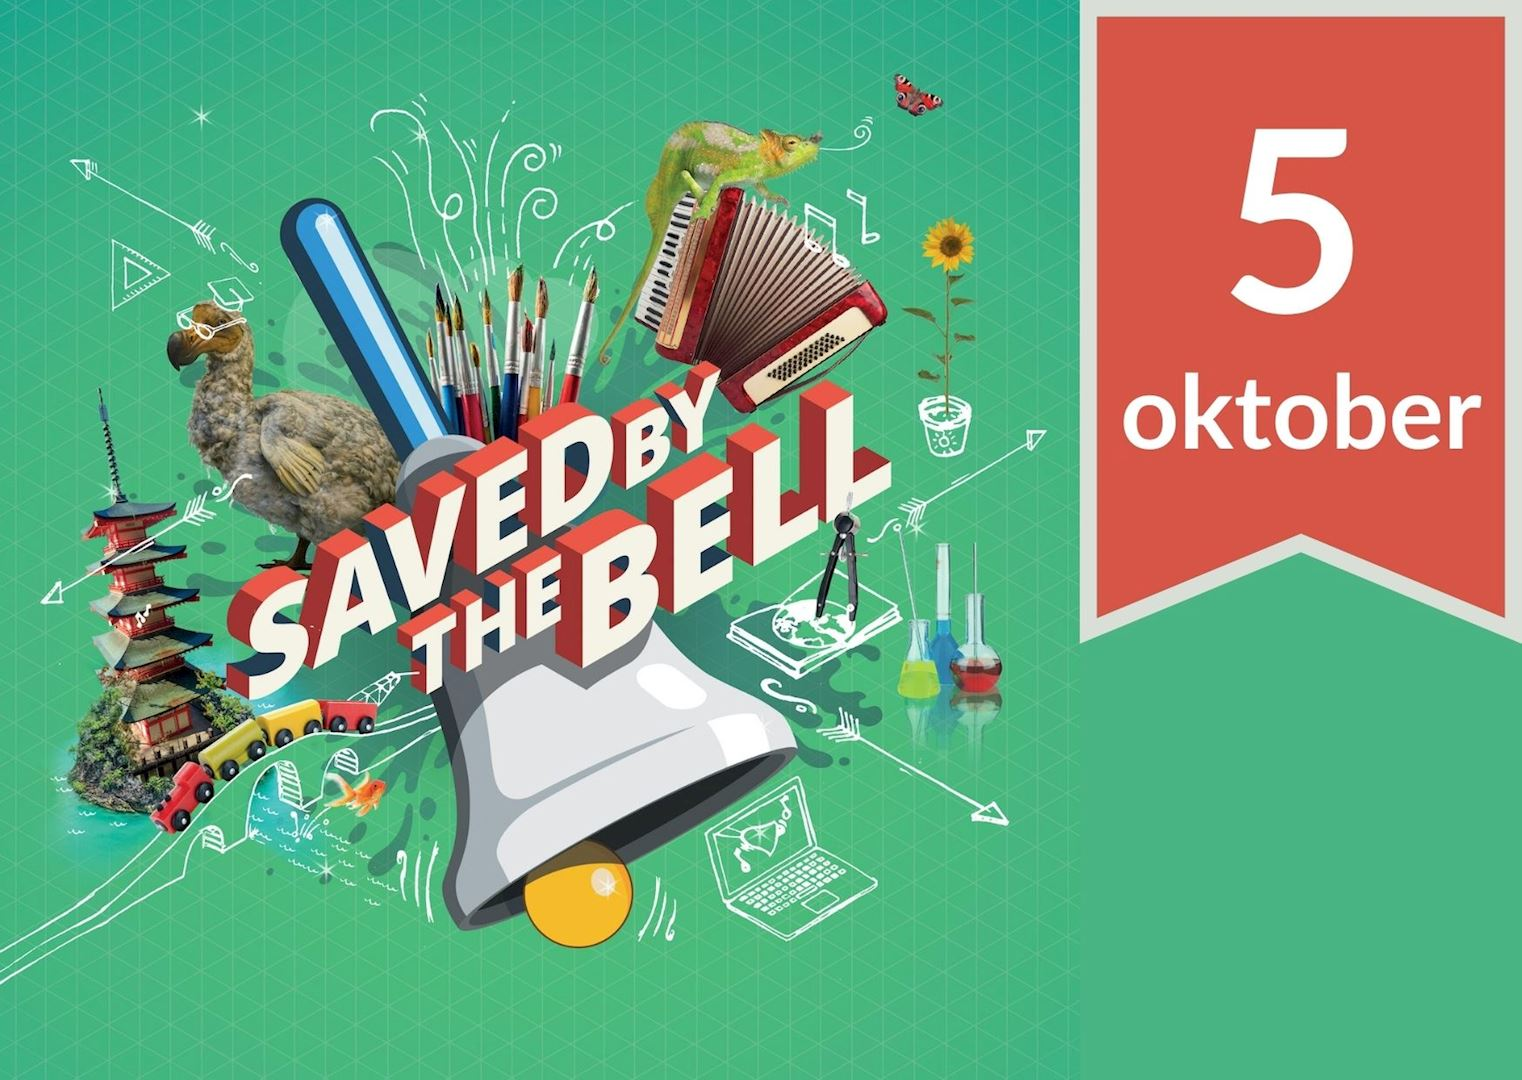 Die Keure steunt Saved by the bell. Doe jij ook mee?